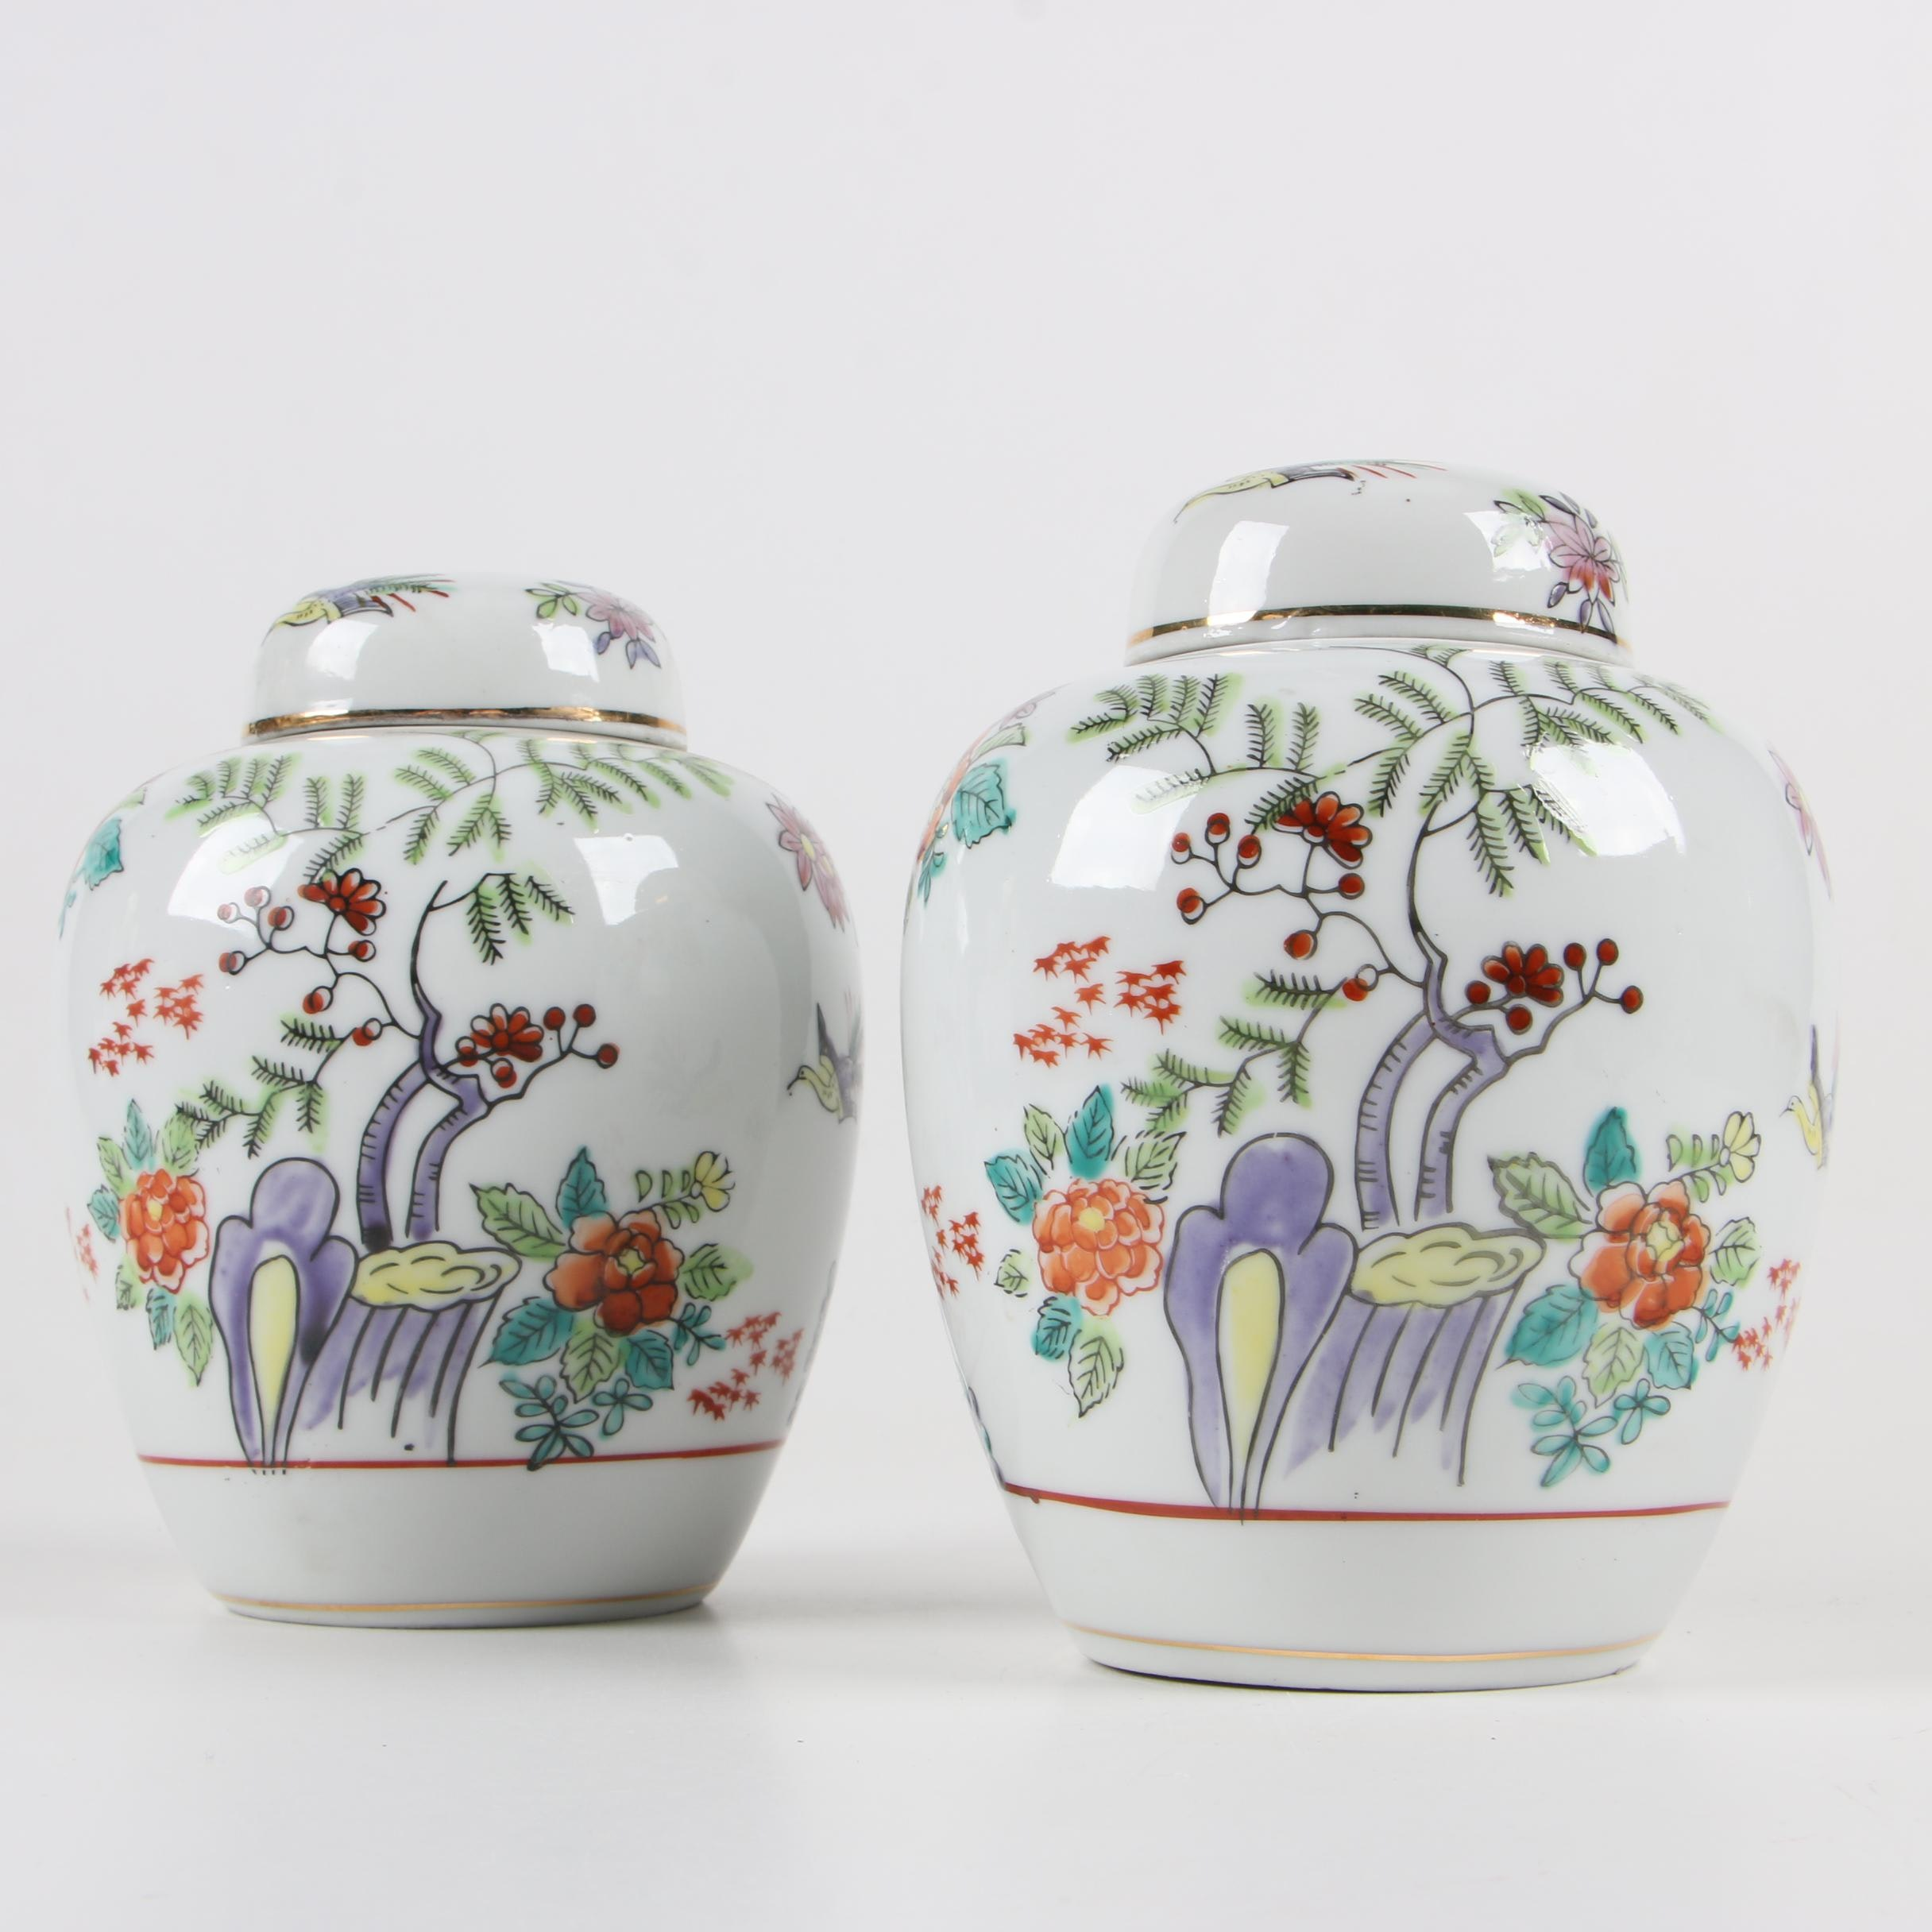 Chinese Porcelain Ginger Jars, Late 20th Century